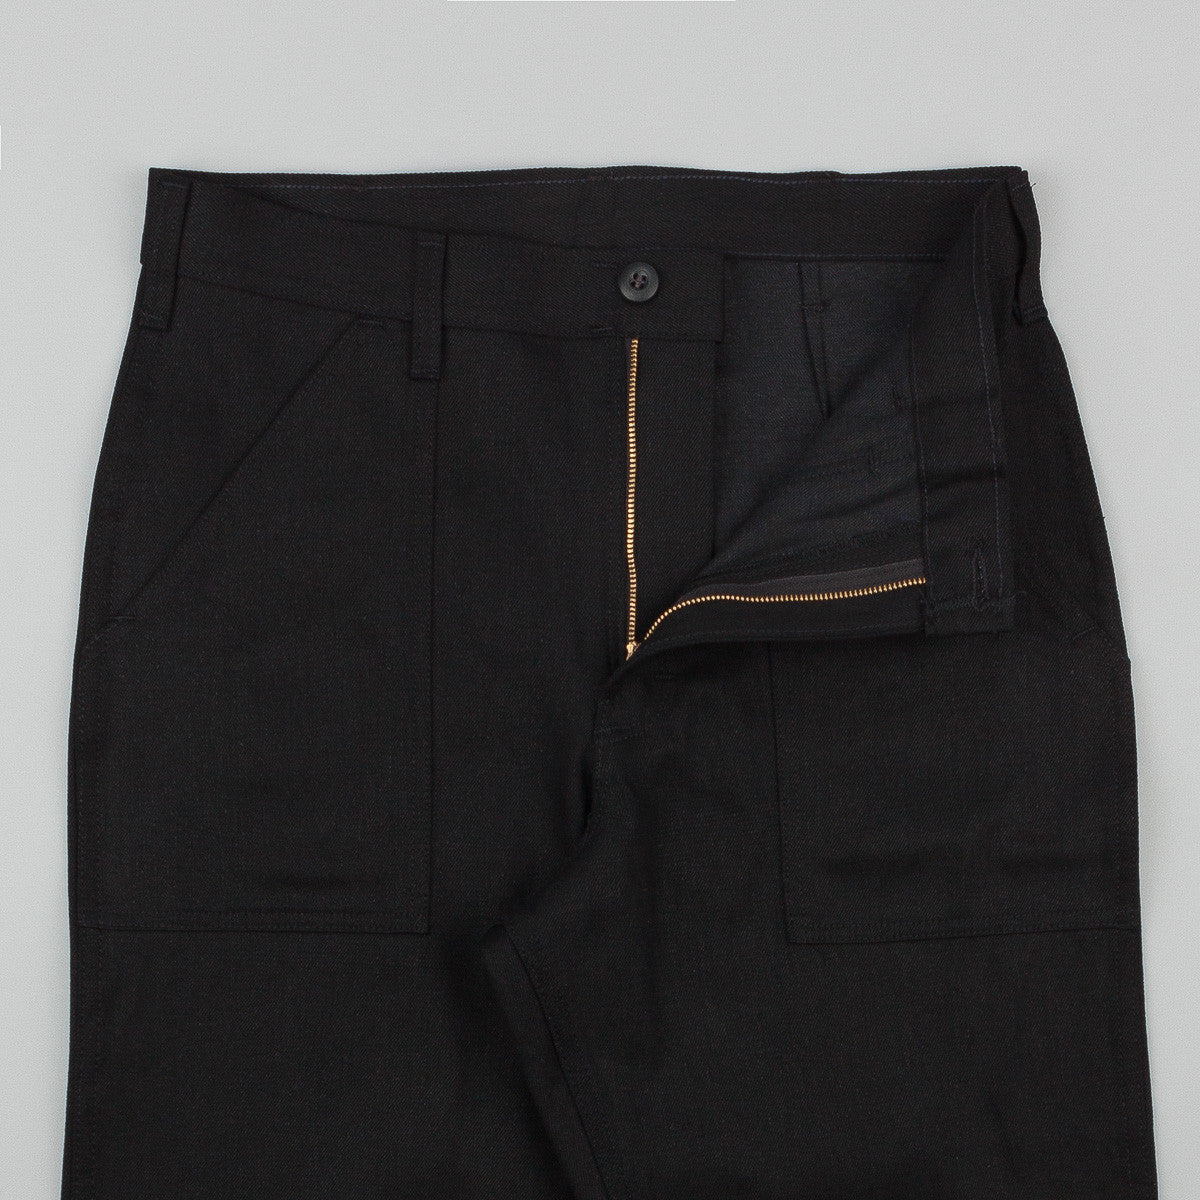 Stan Ray Taper Fit 4 Pocket Fatigue Trousers - Black